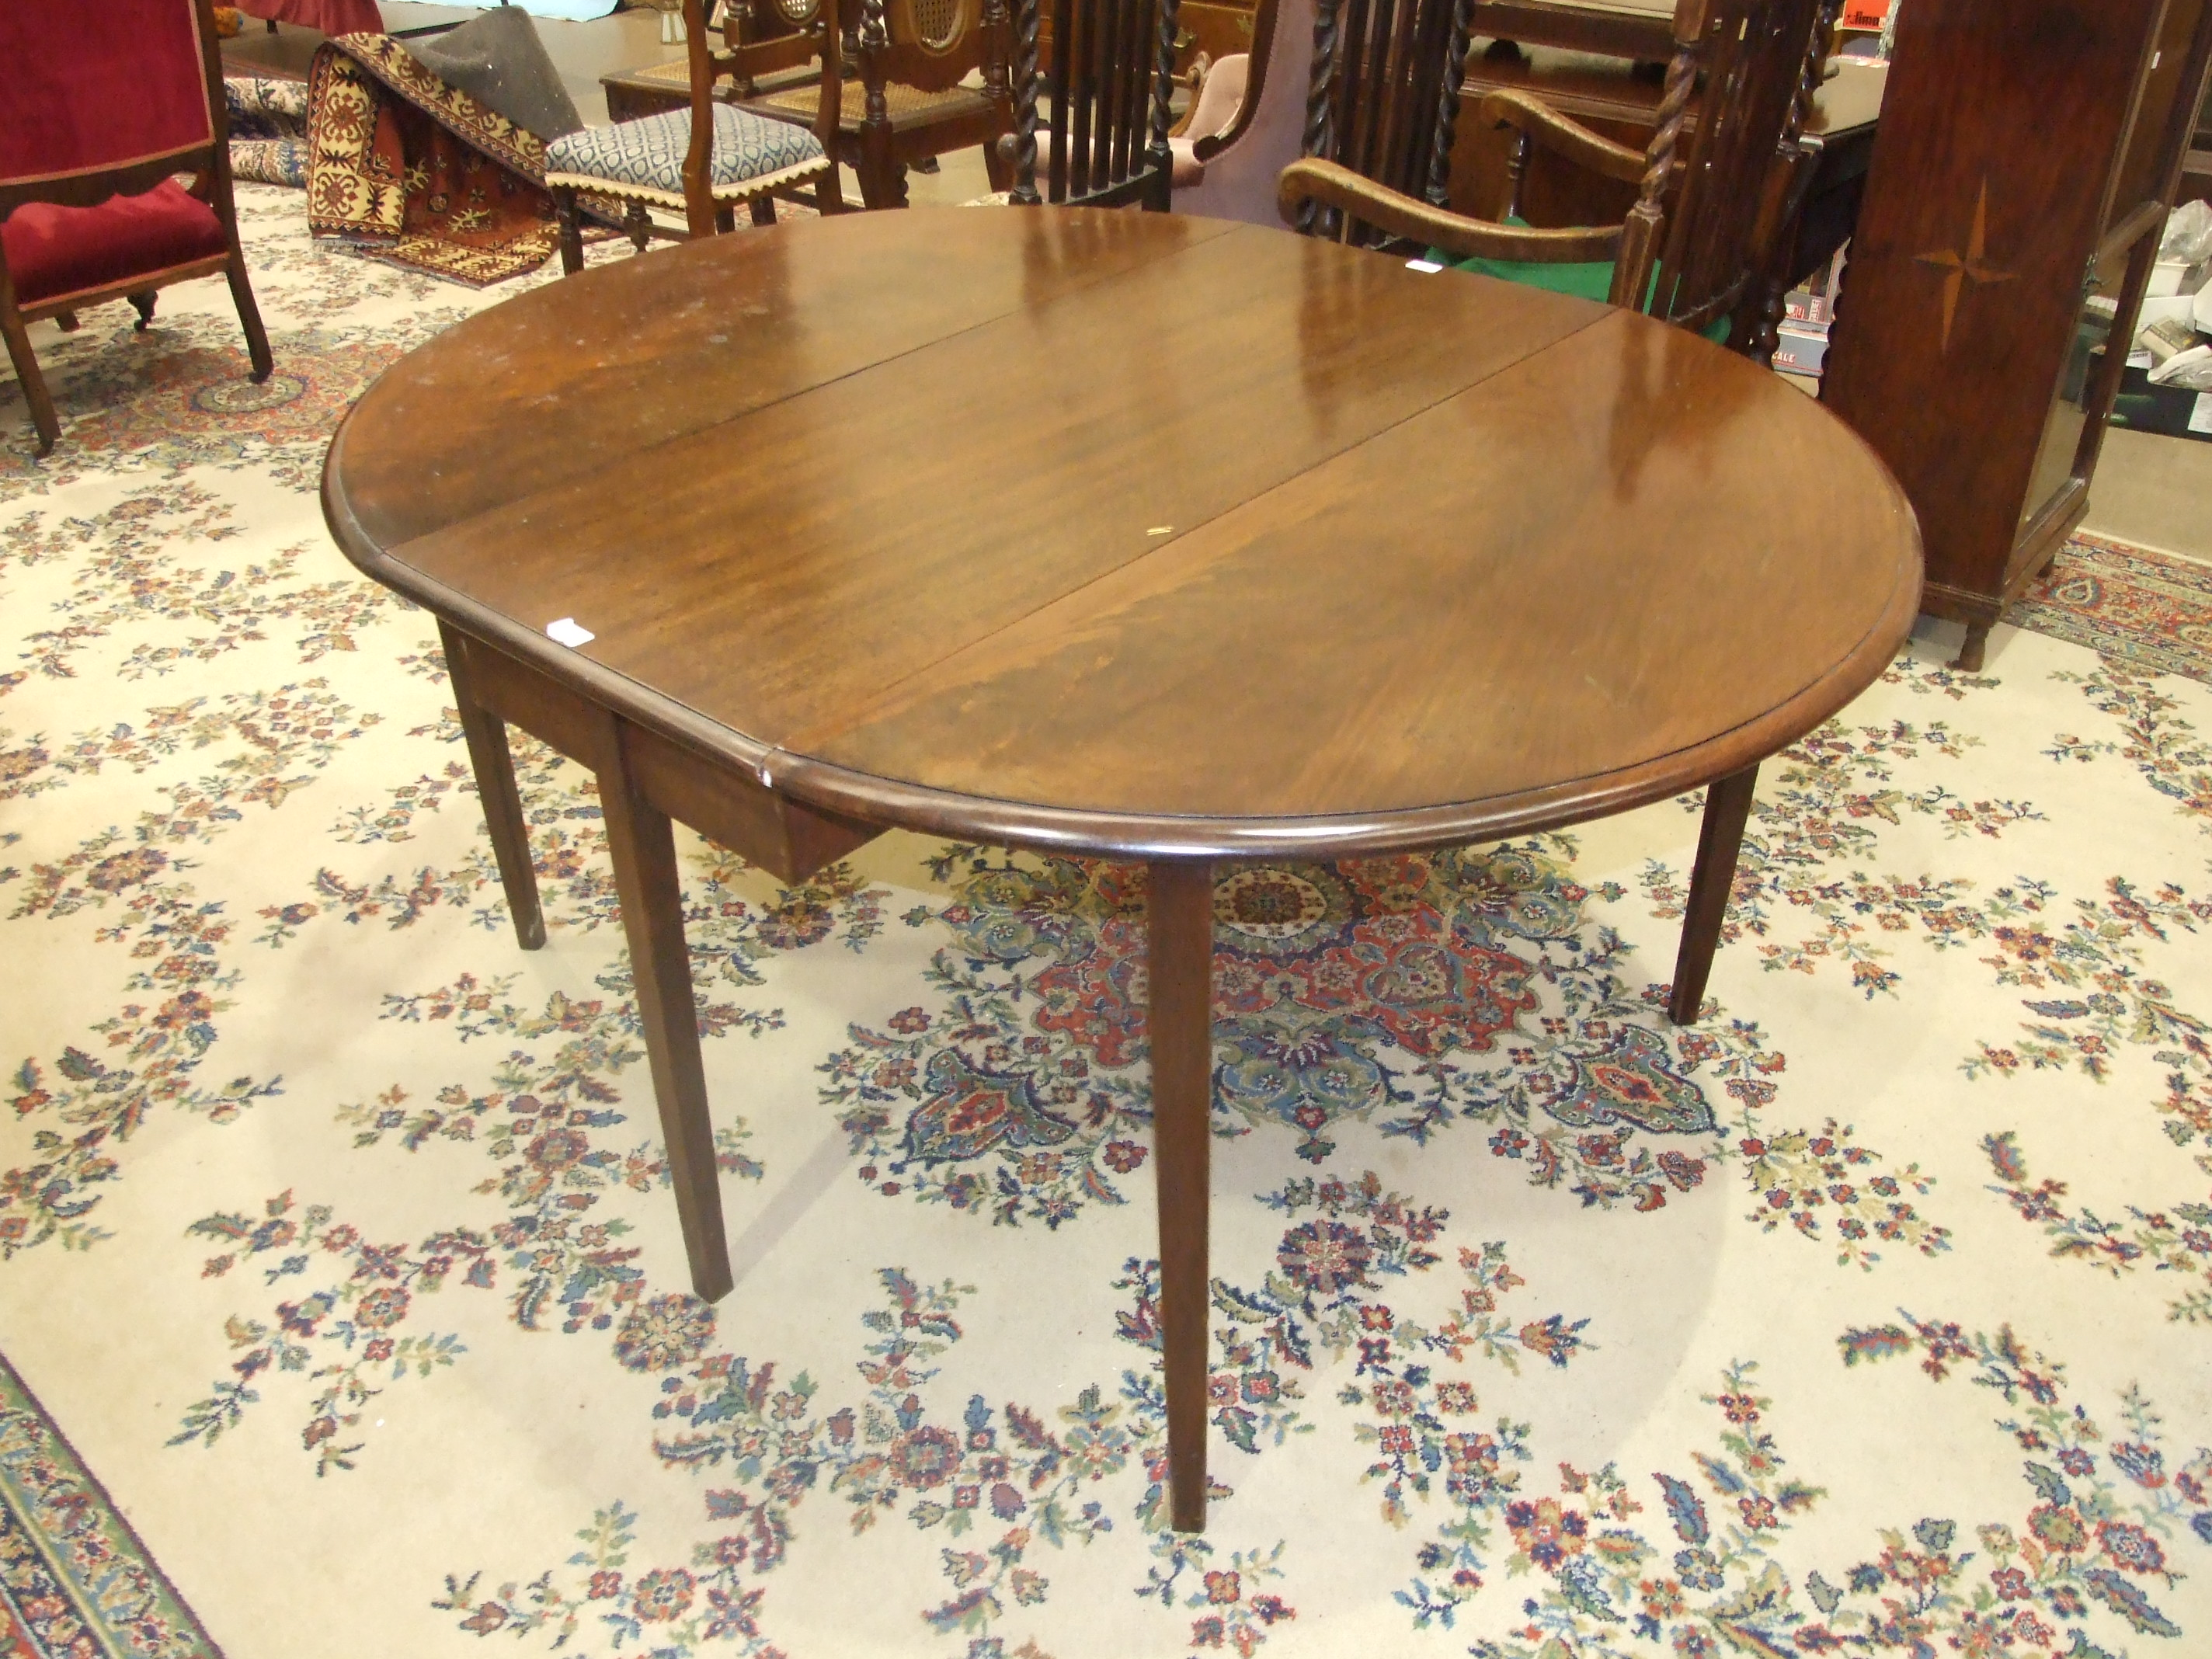 A Georgian mahogany drop leaf dining table with two oval leaves on square tapered legs, 154 x